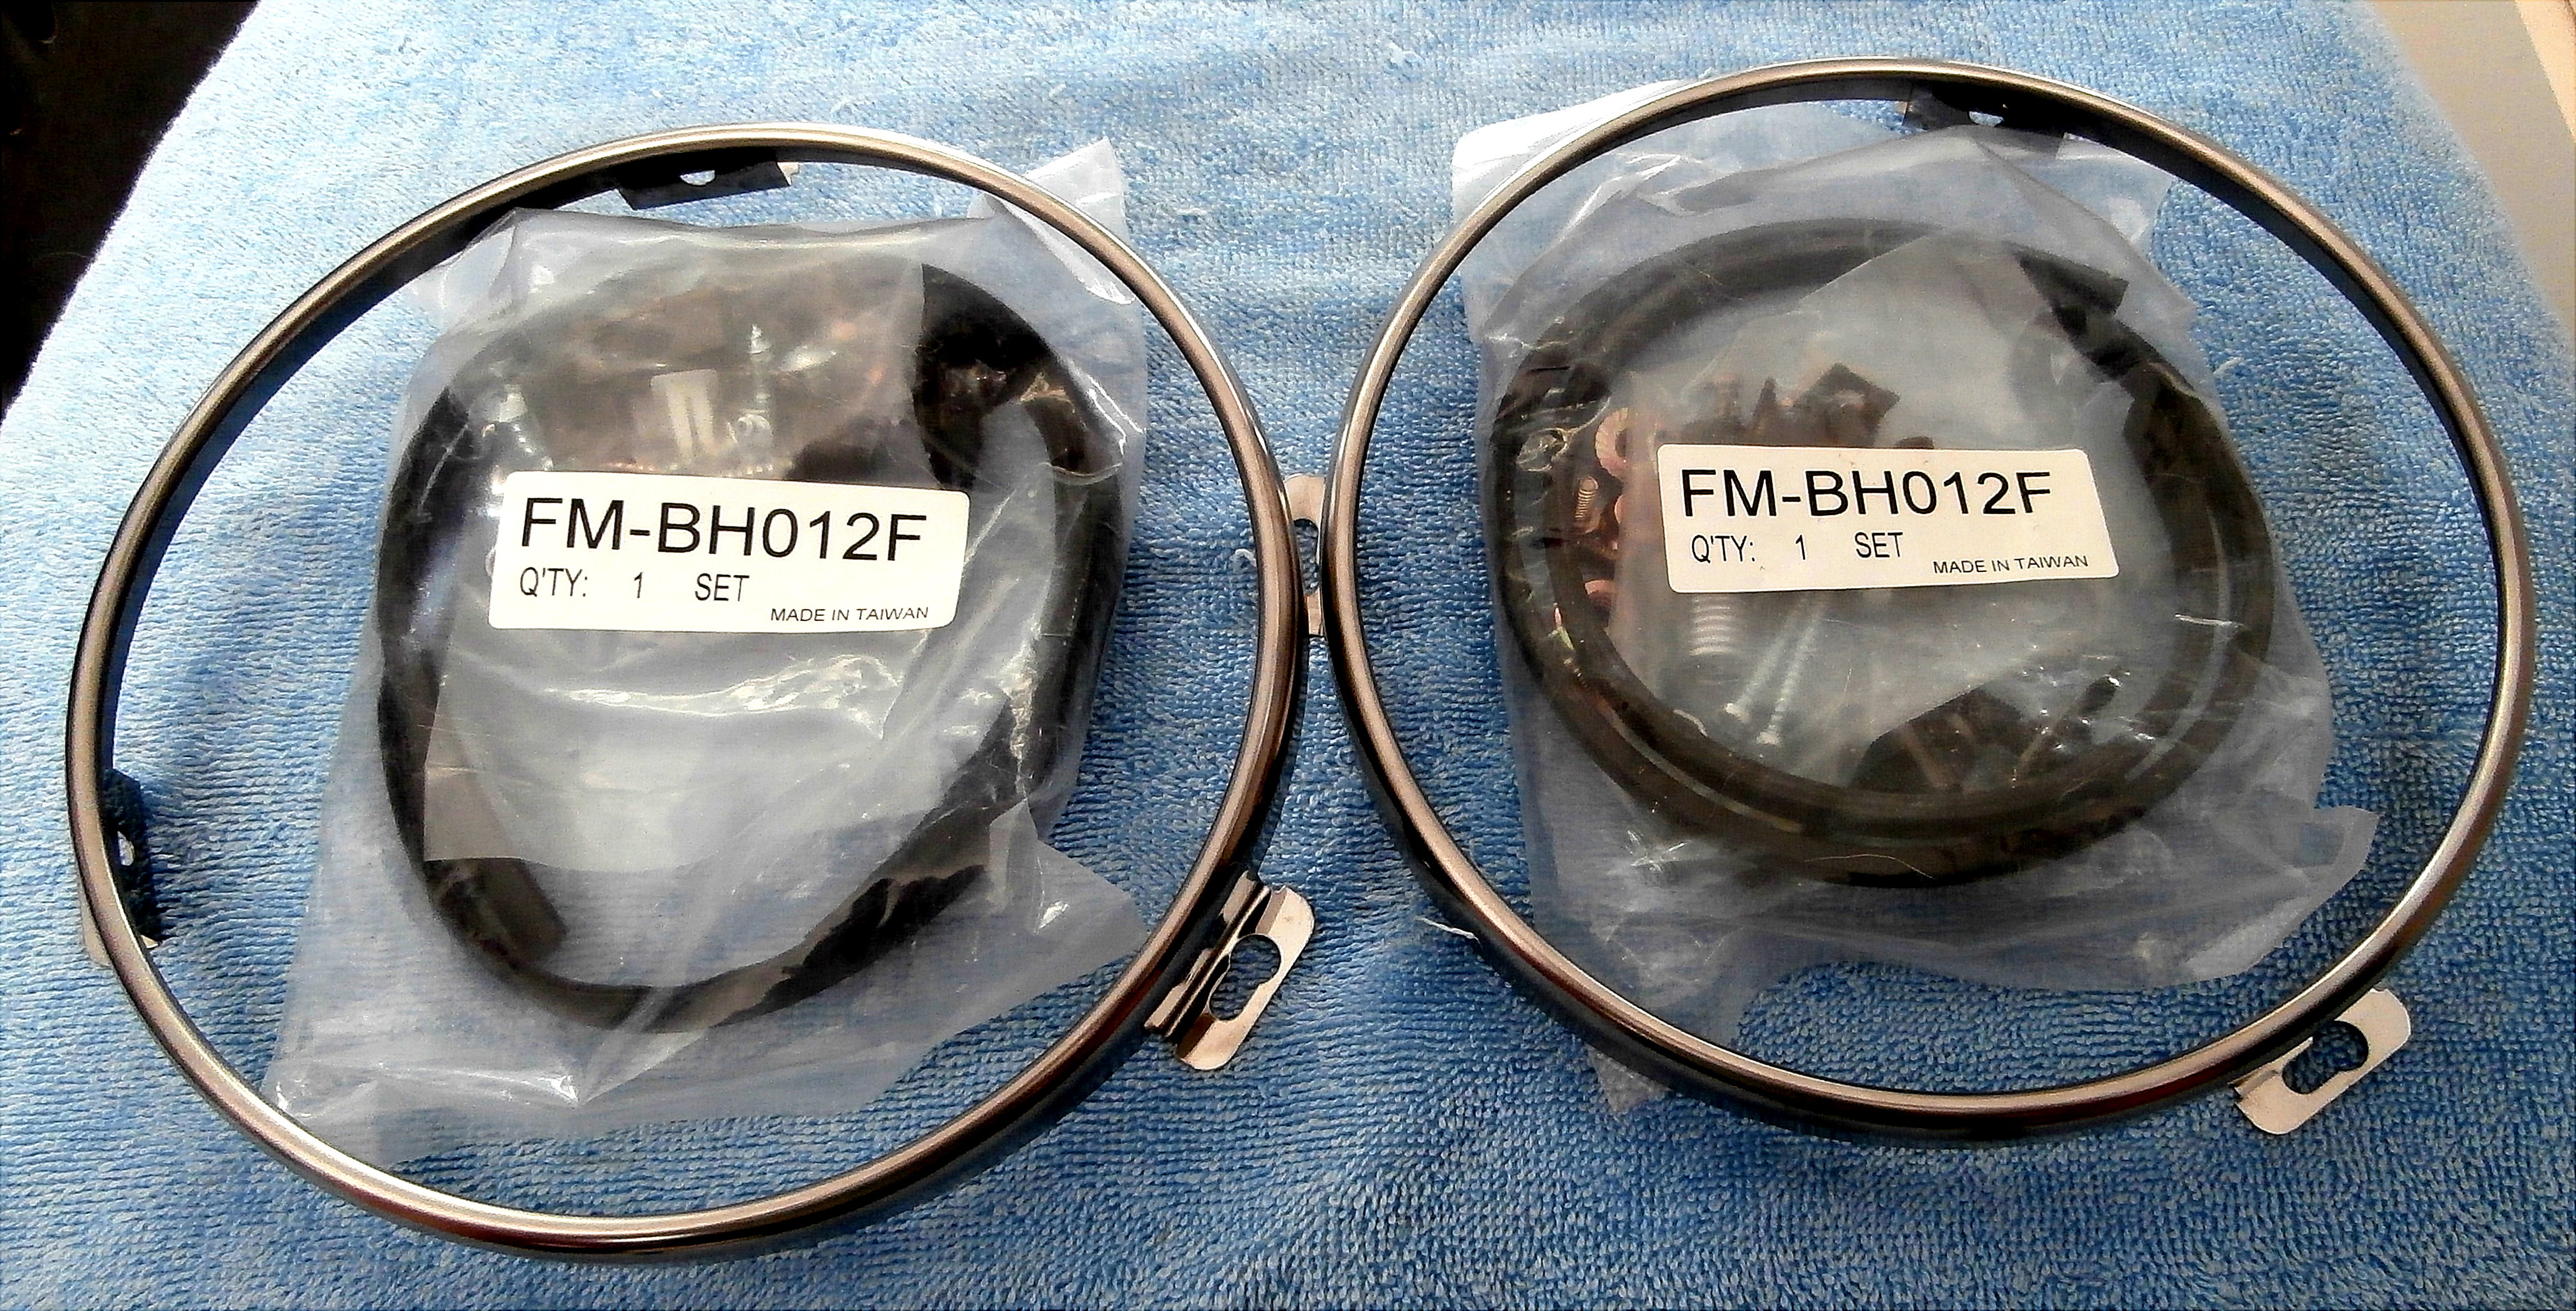 1970 Ford Mustang Head Light Rings, and Assembly Hardware Kit